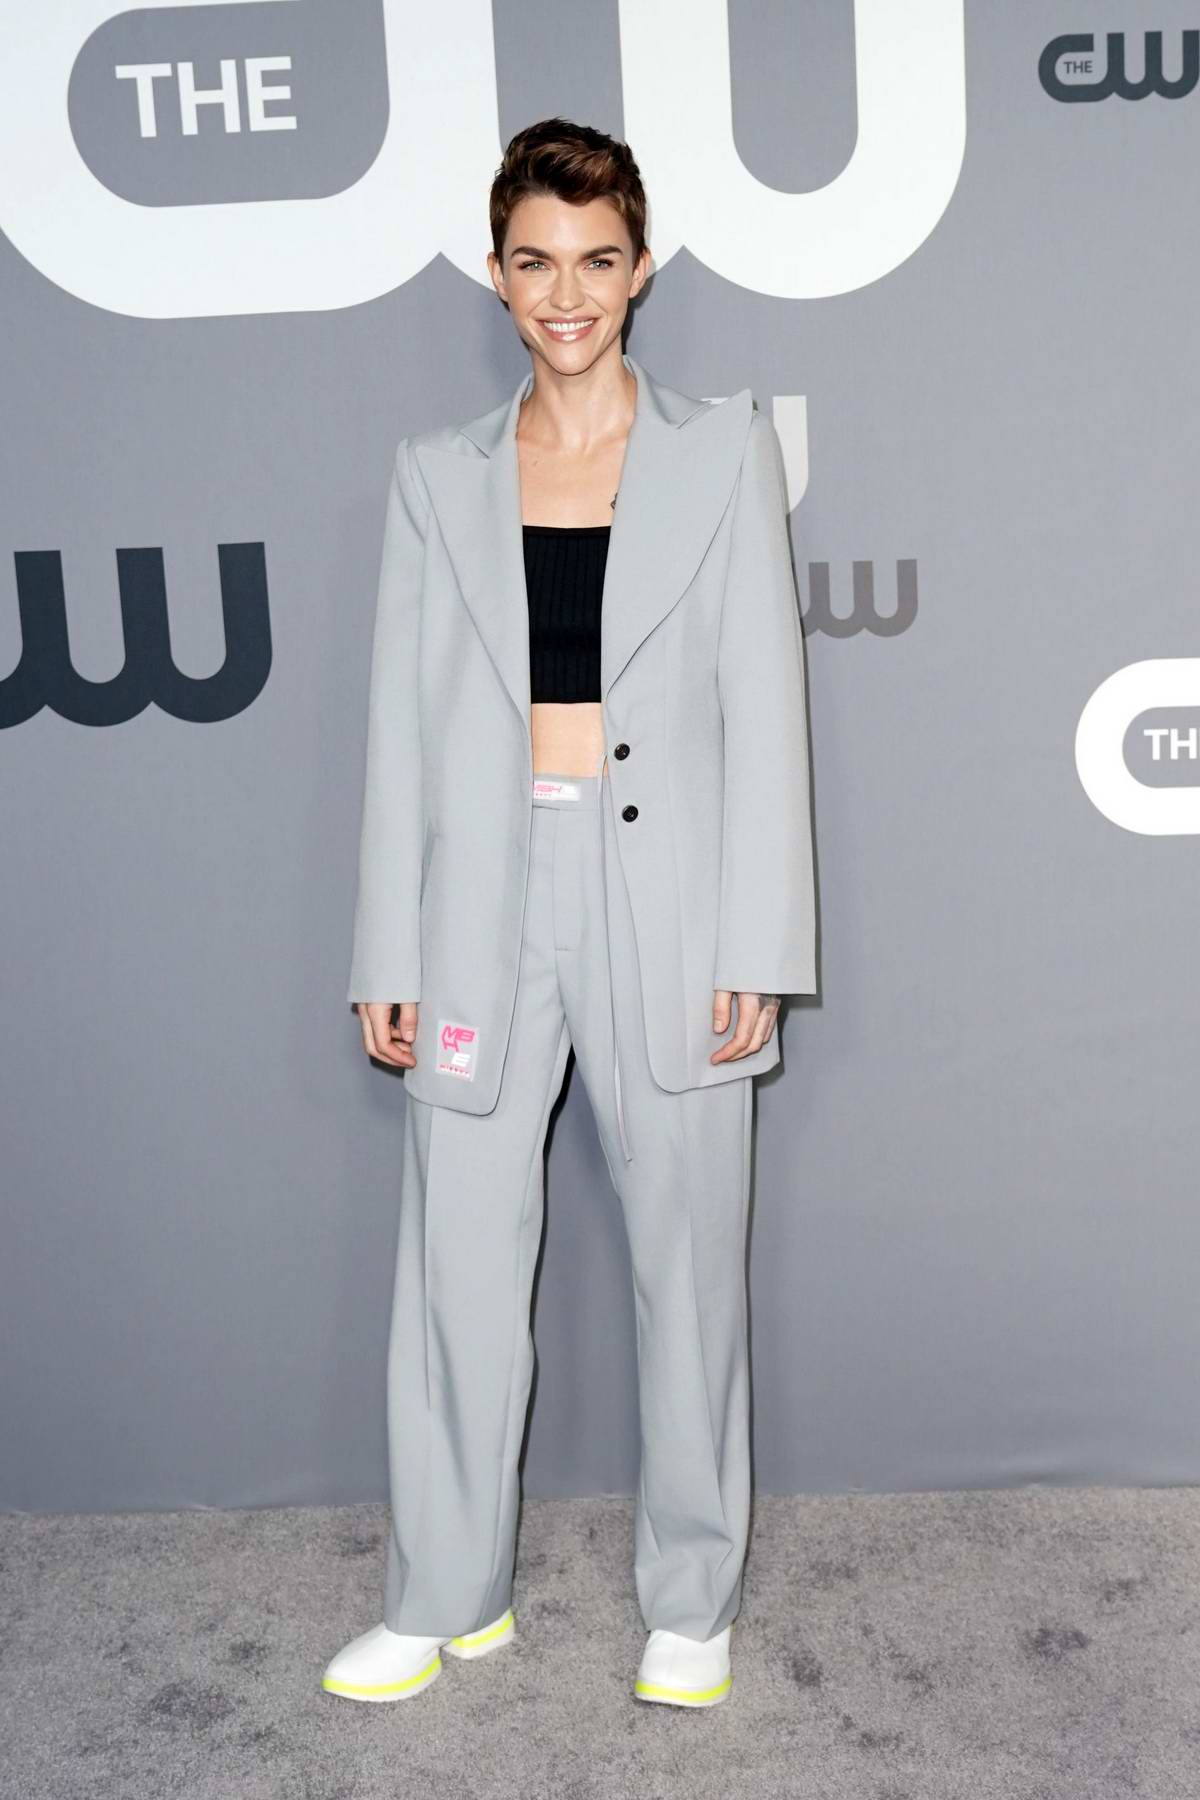 Ruby Rose attends The CW Network 2019 Upfronts in New York City